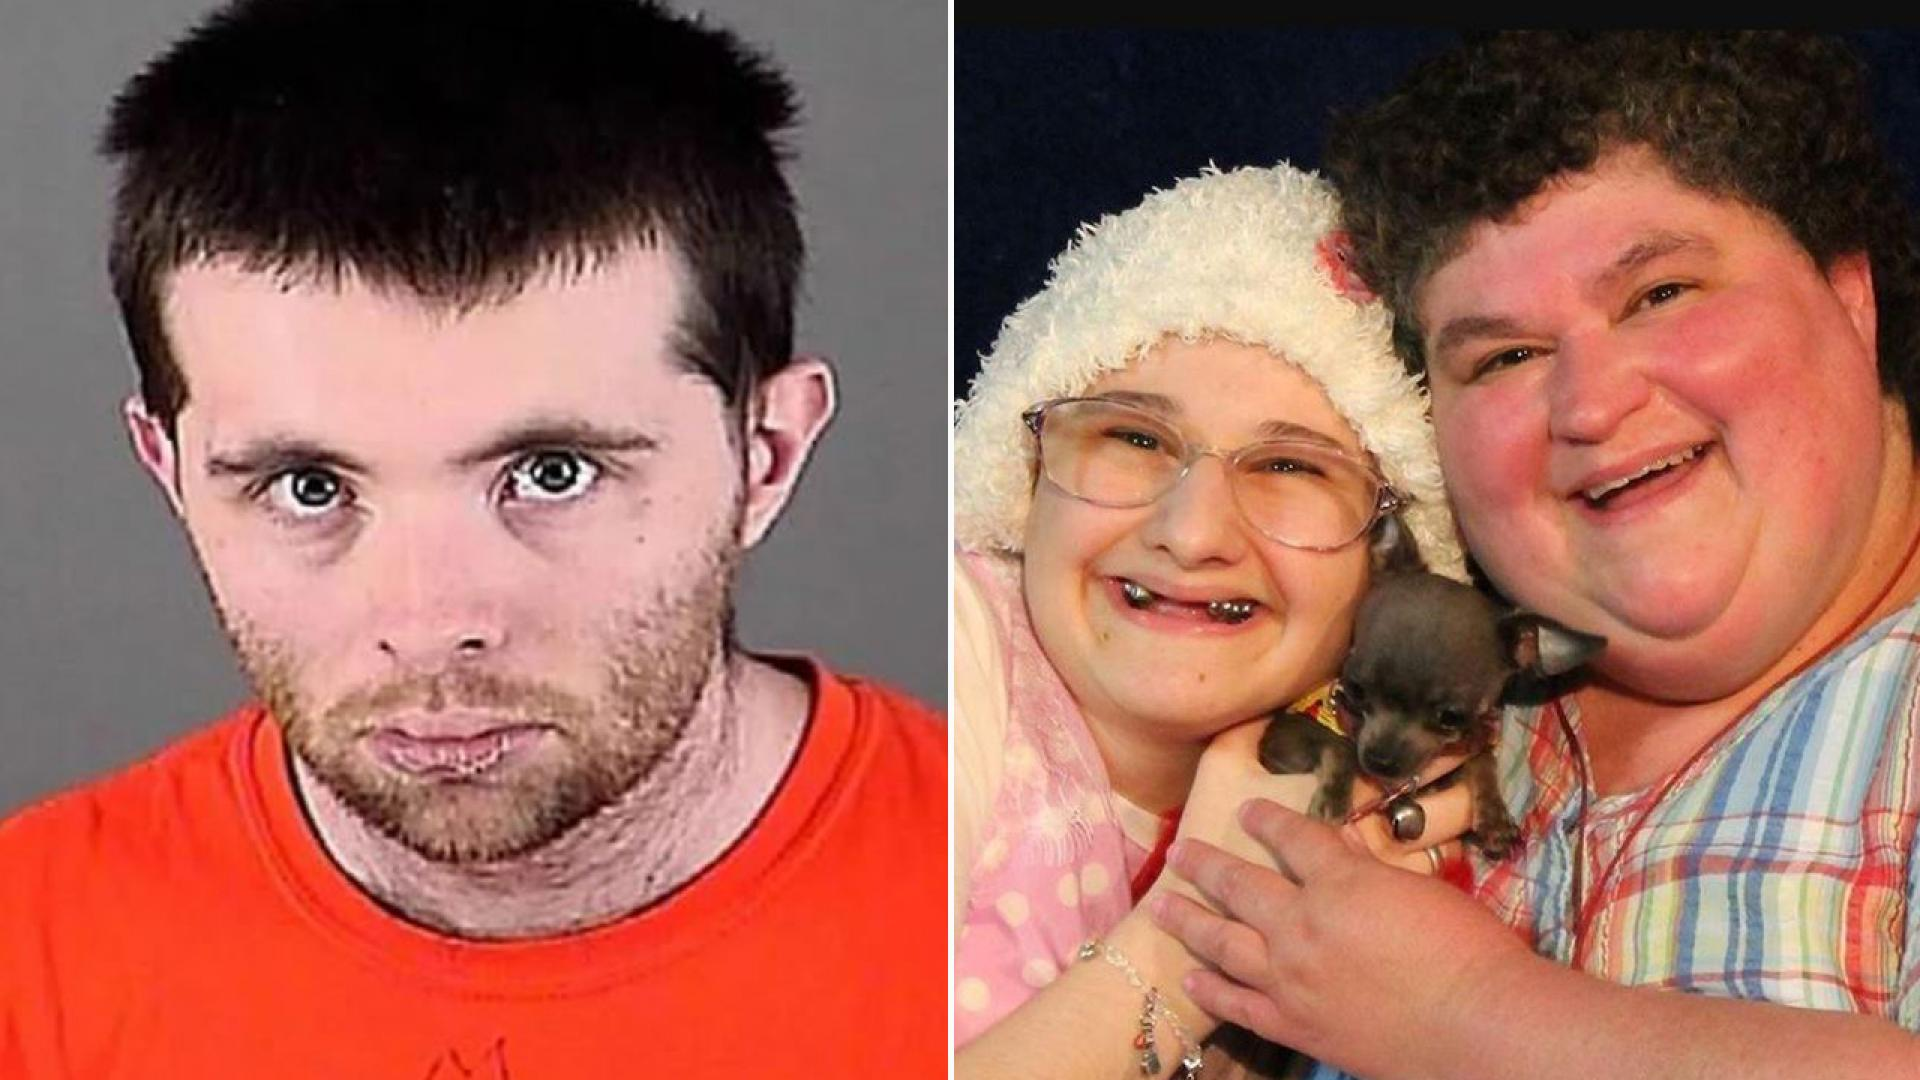 Nicholas Godejohn, 30, was sentenced to life in prison without the possibility of parole for the 2015 stabbing death of Dee Dee Blanchard, who Gypsy said had for years made her severely ill.